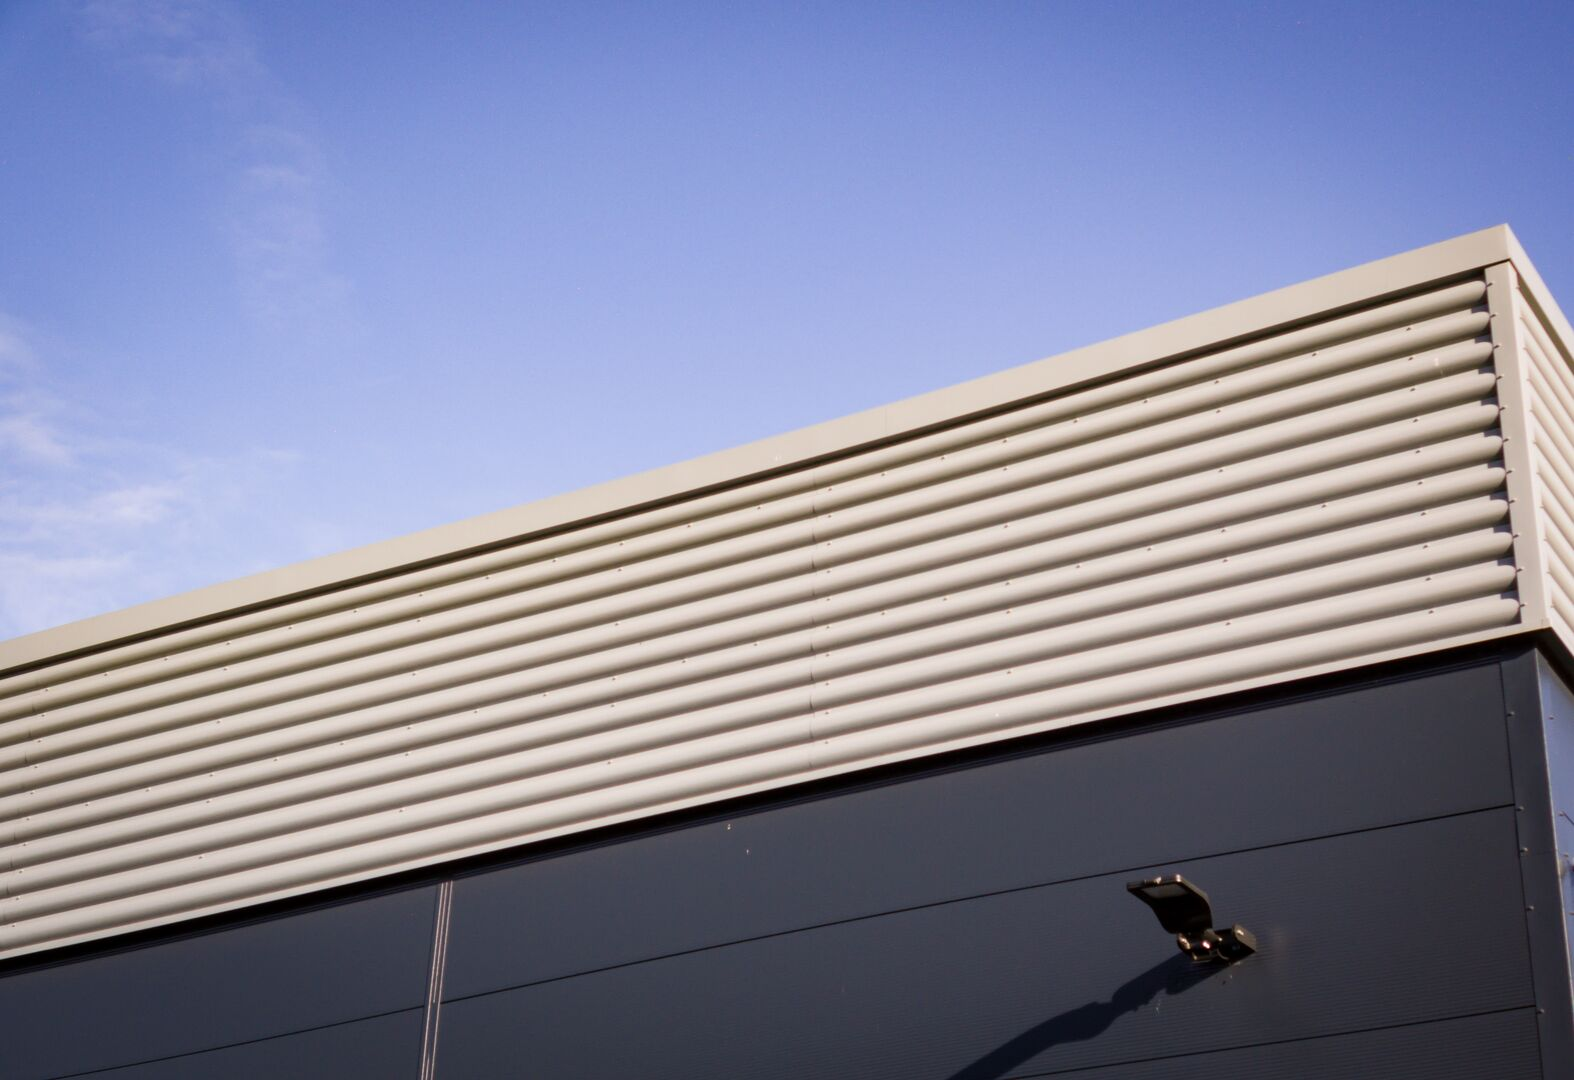 Wickes using Tata Steel Trisobuild profile steel cladding